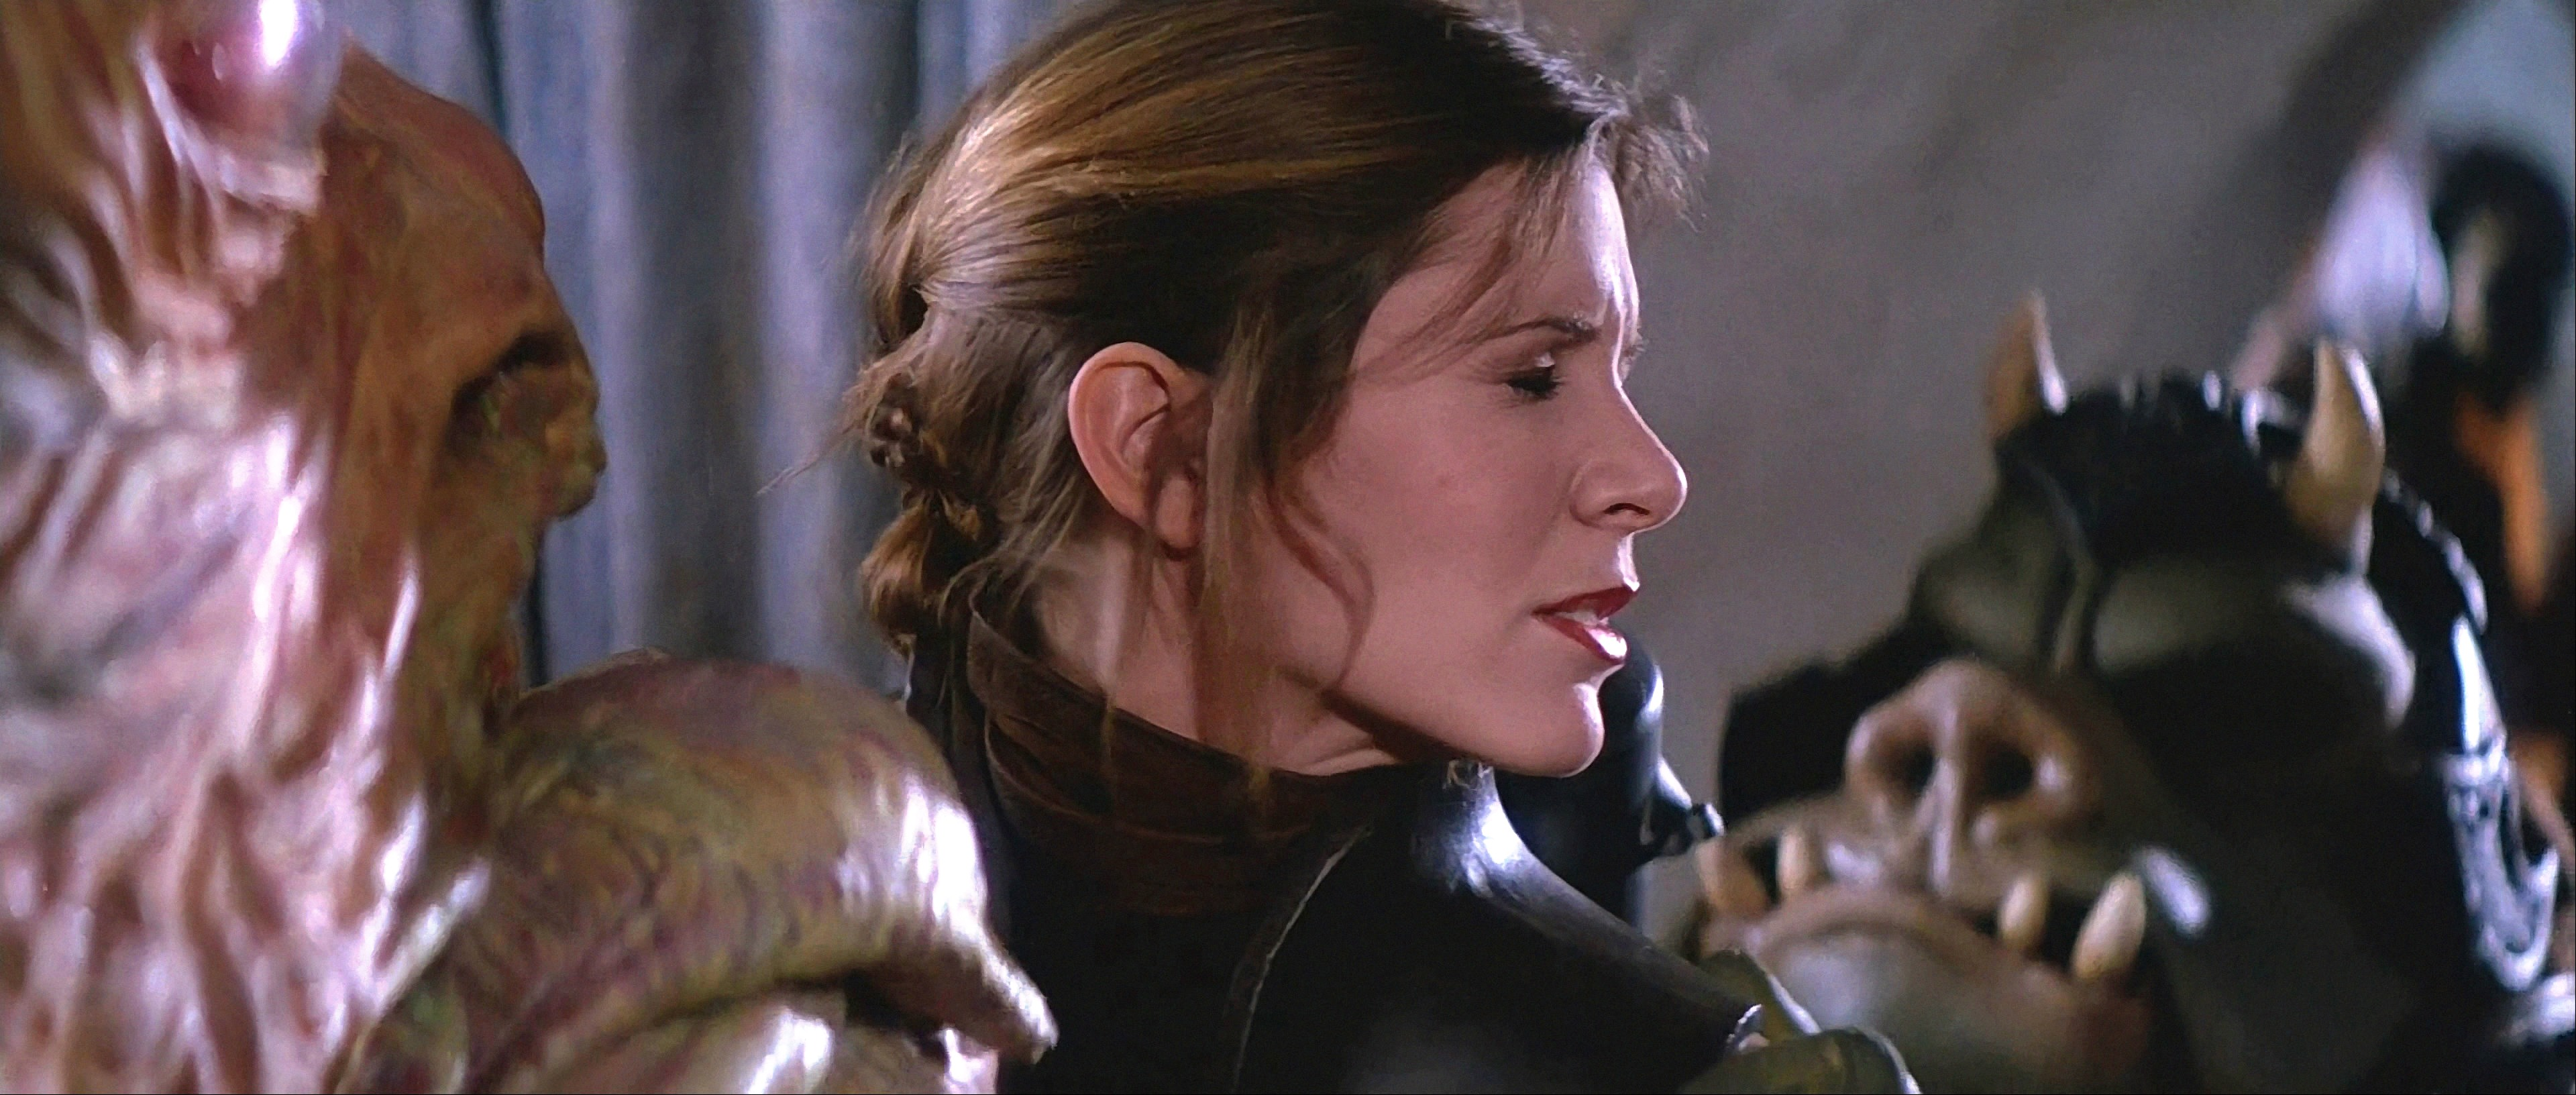 Return Of The Jedi Star Wars Jabba Kisses Leia 3840x1632 Wallpaper Teahub Io